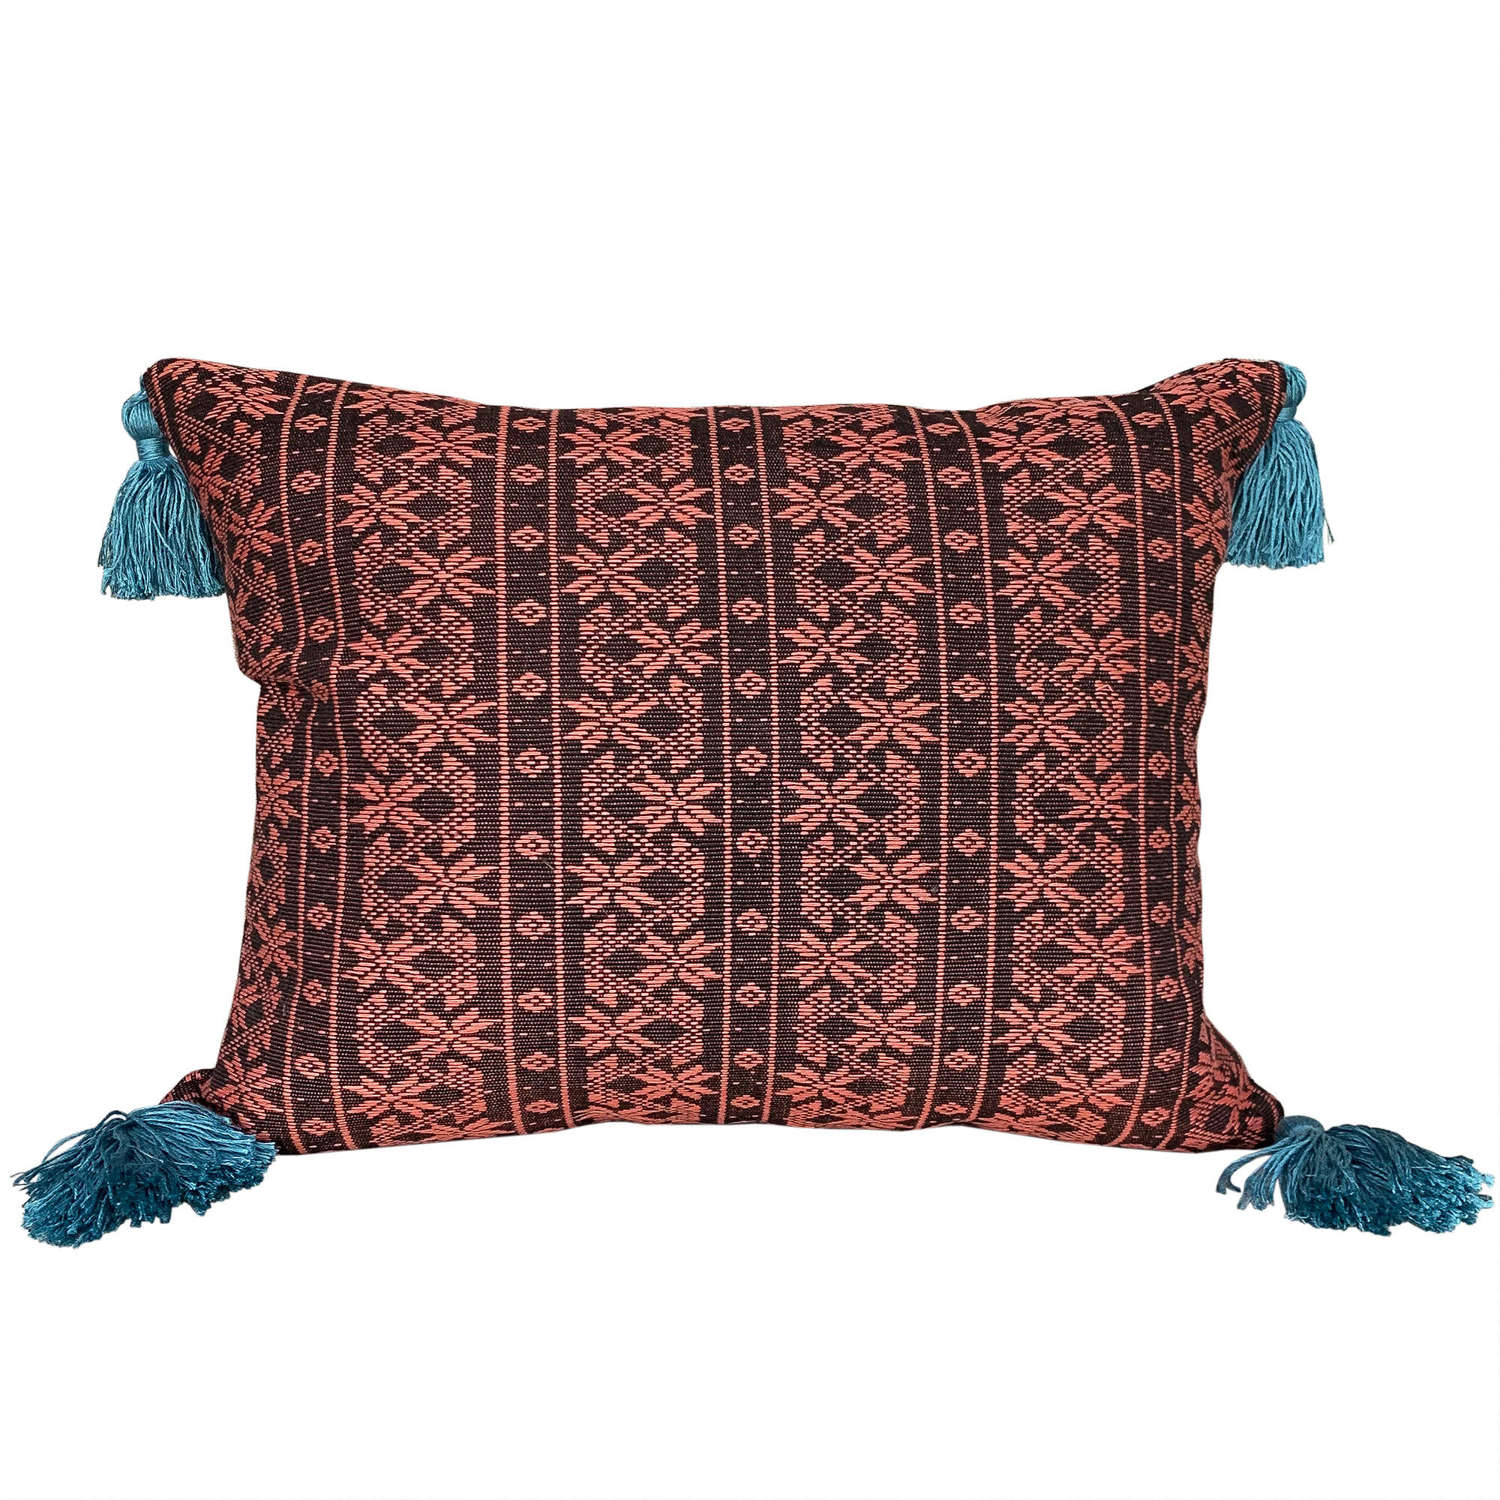 Naga cushions with teal tassels